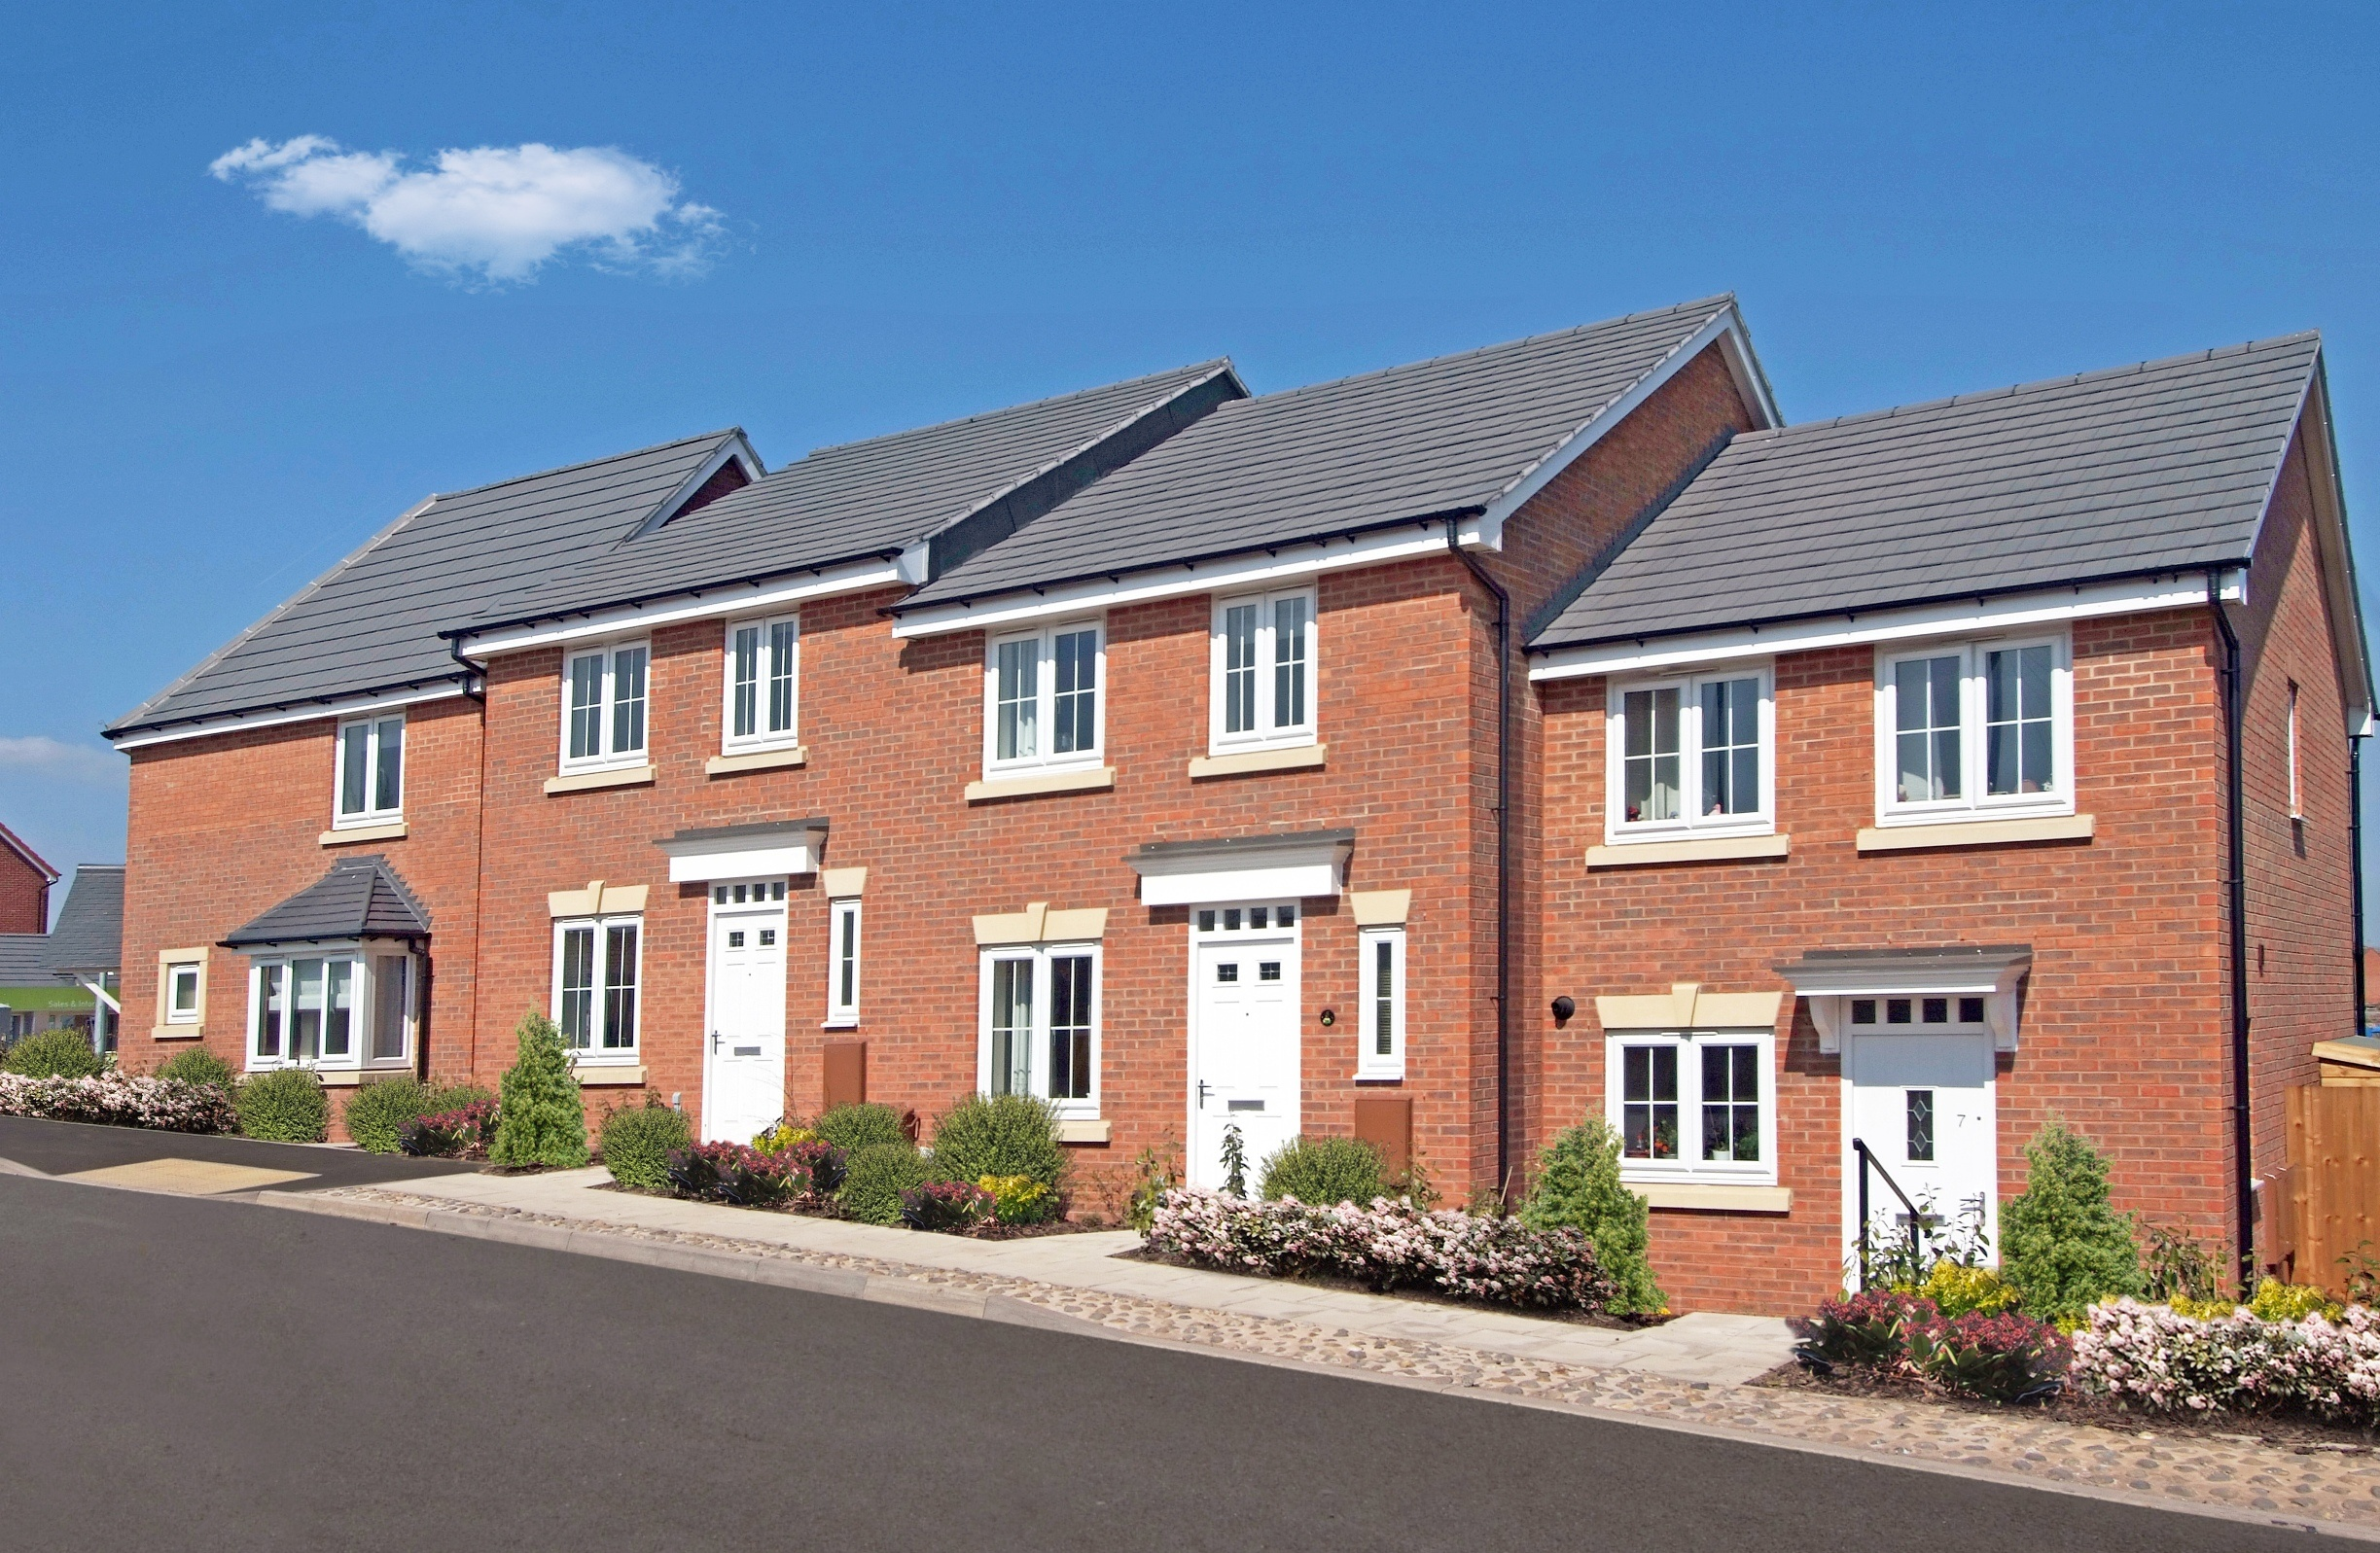 House builders pledge to build more homes for Builder home